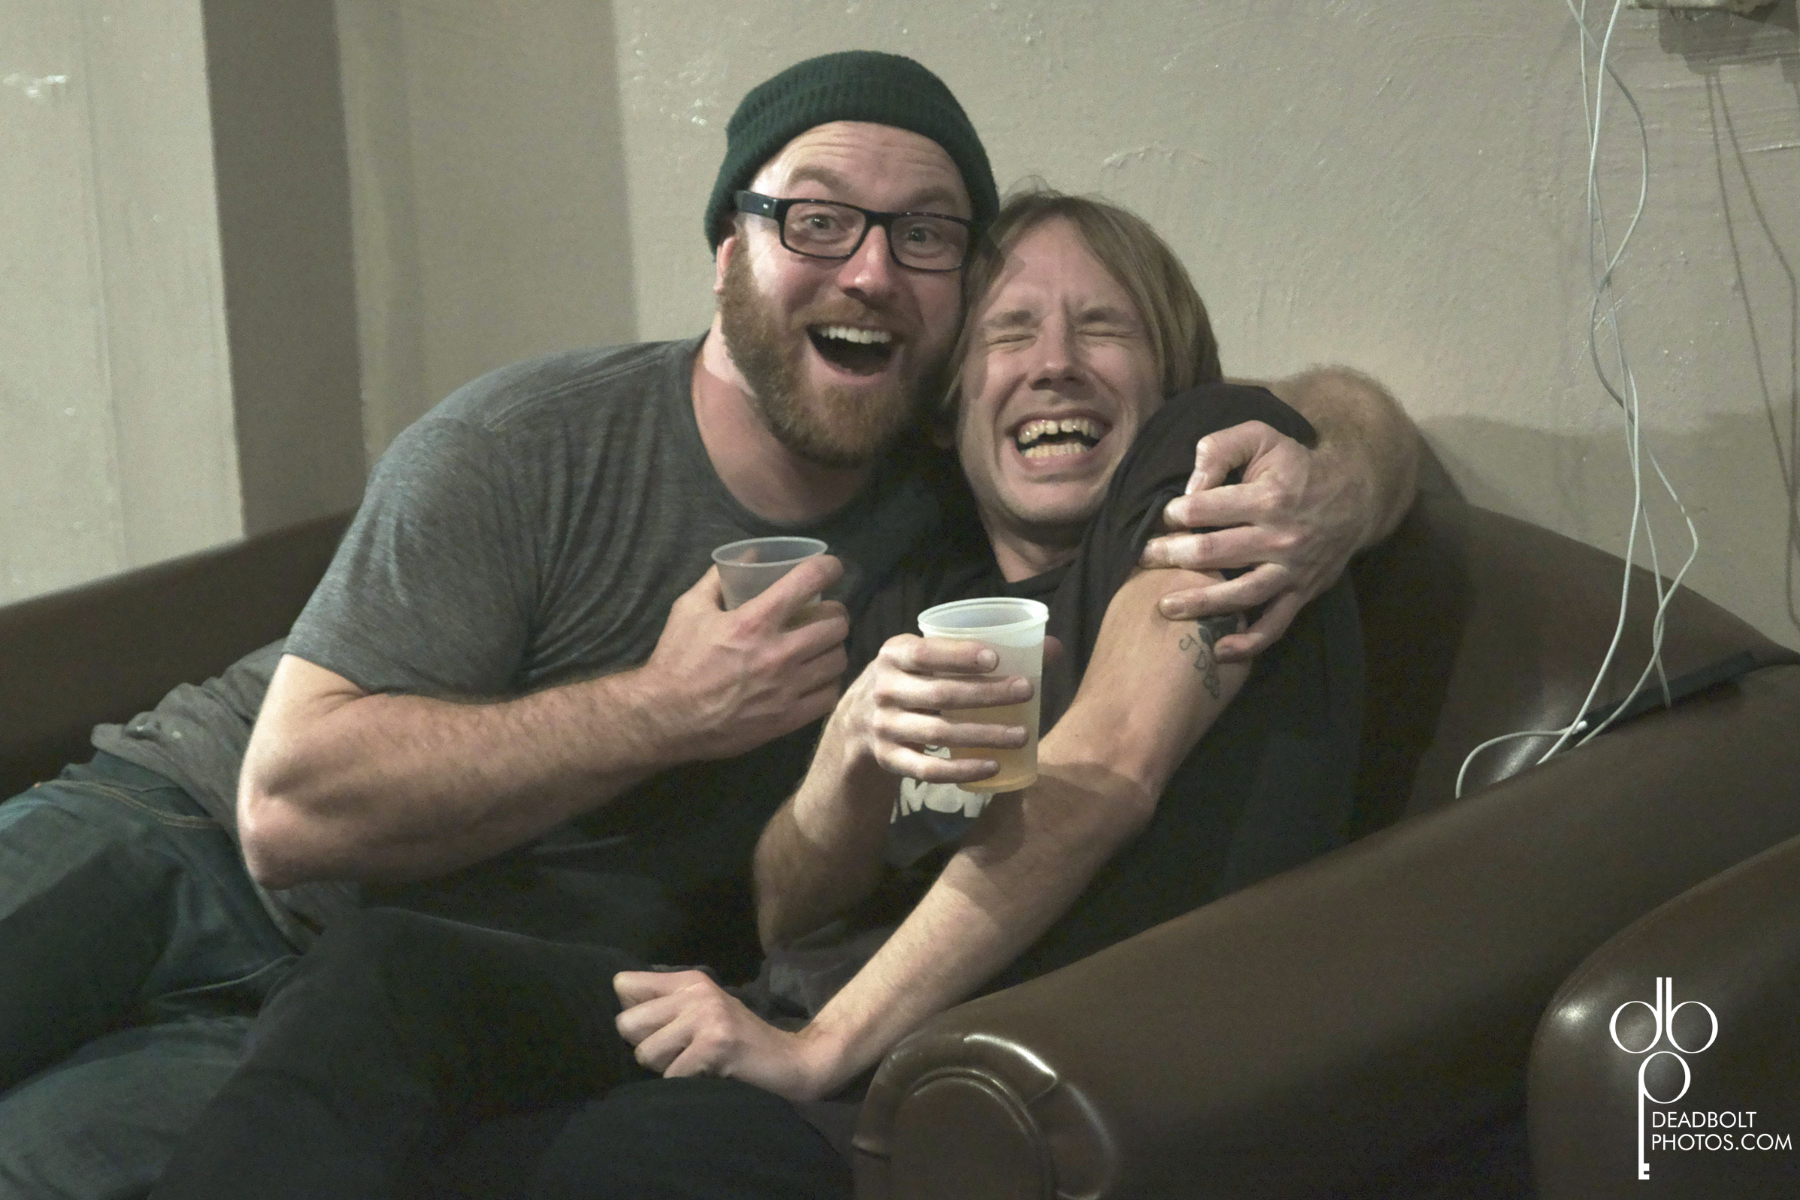 Geoff and Brian